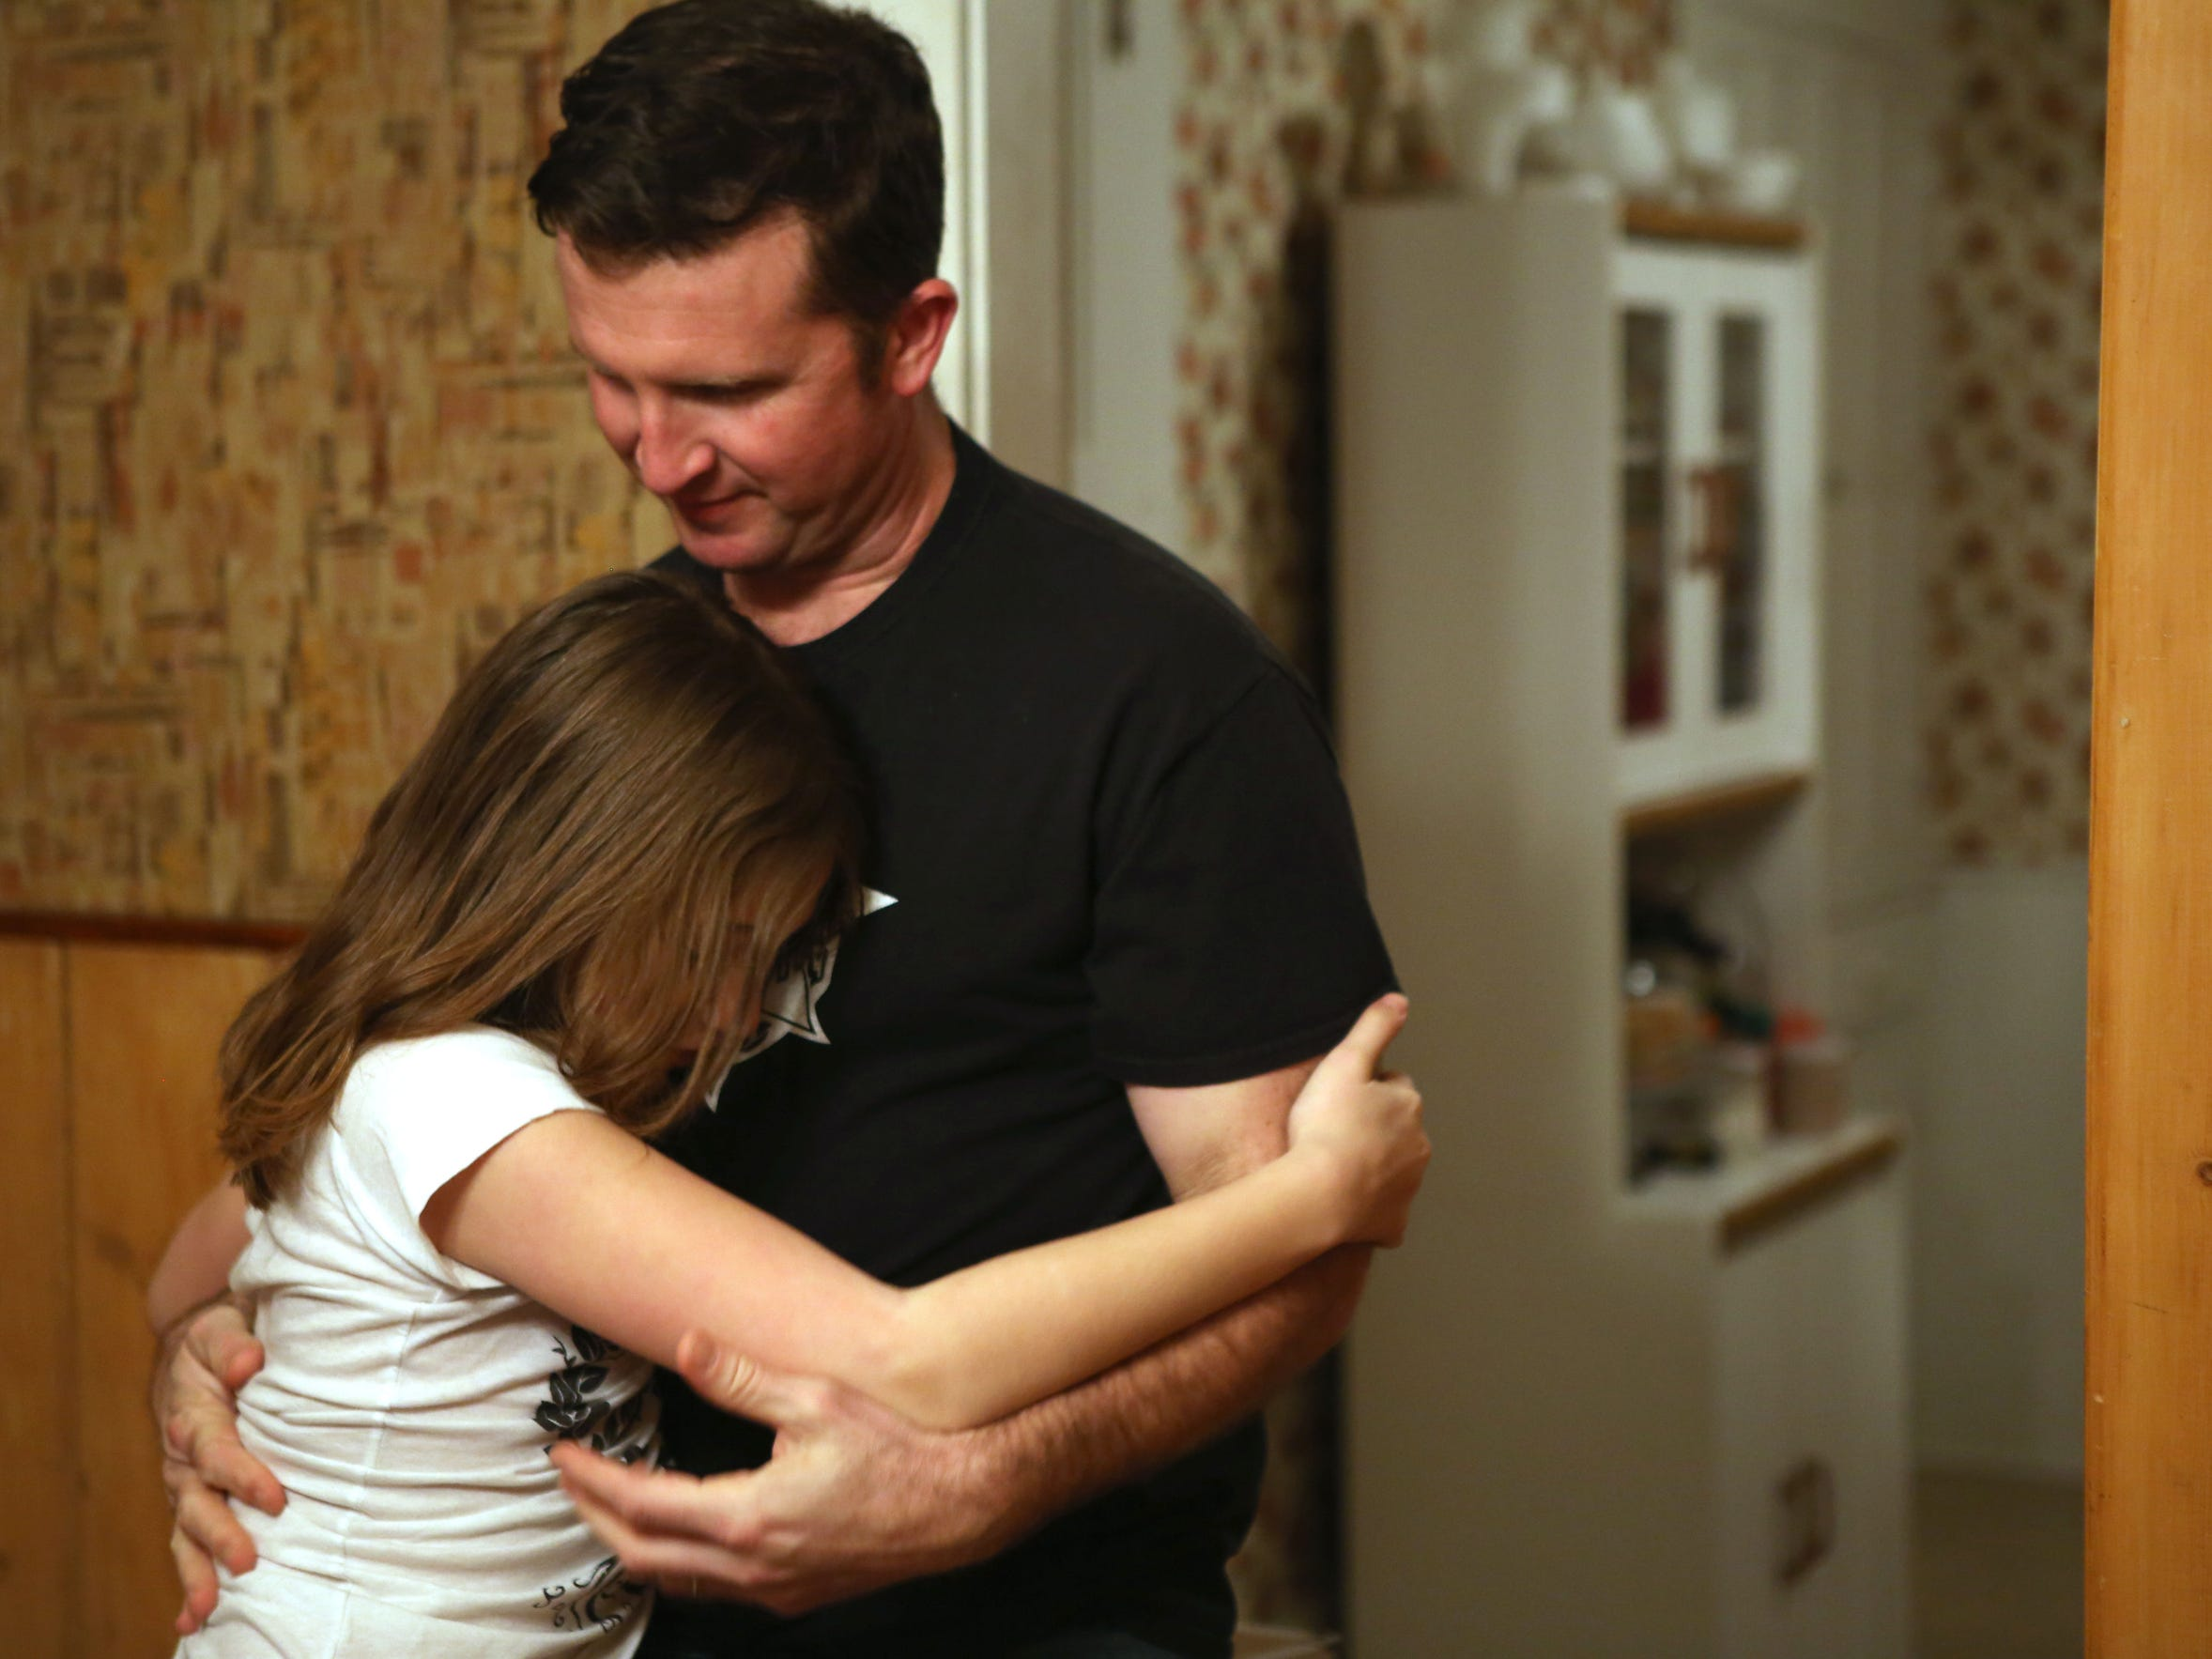 Jason embraces his daughter after they made dinner